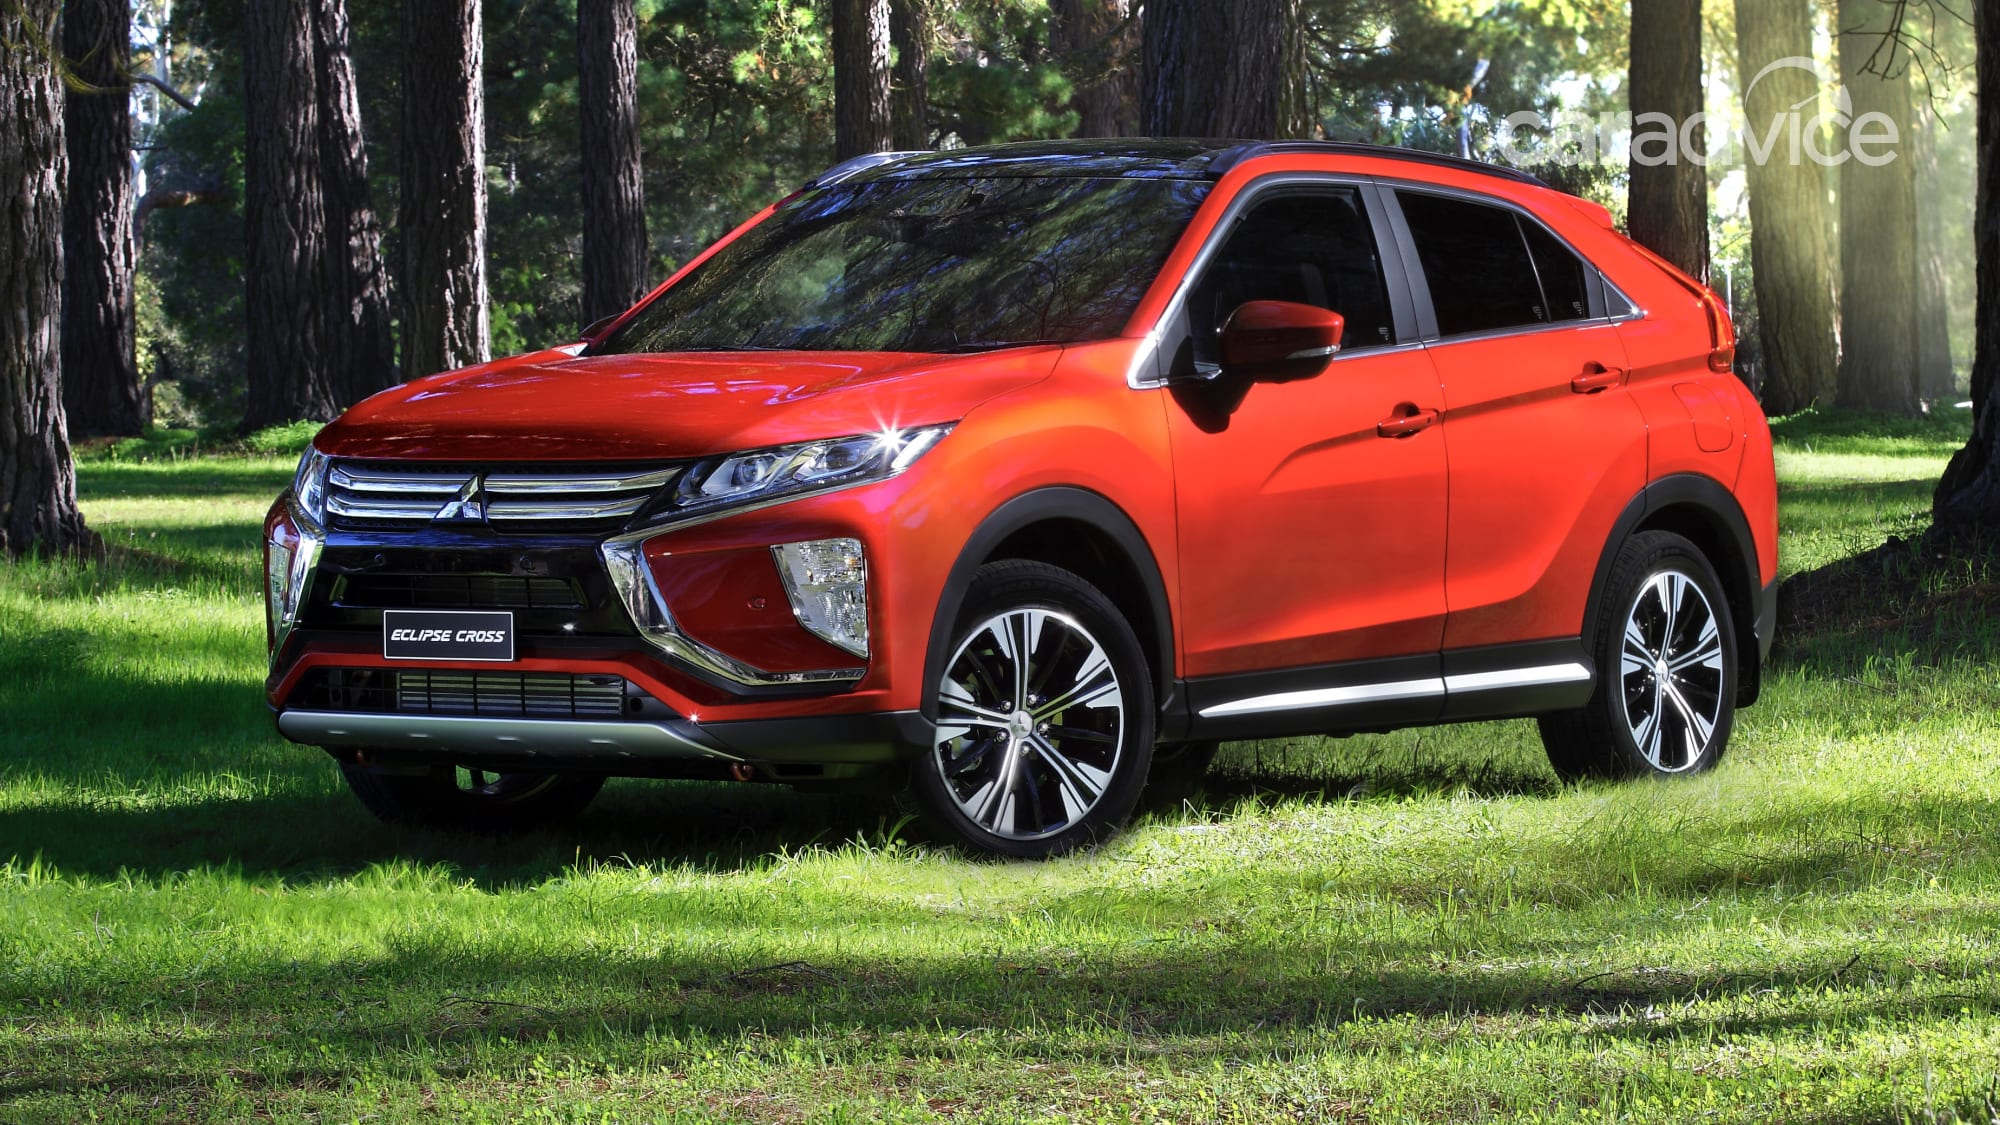 2021 mitsubishi eclipse cross facelift spied  caradvice